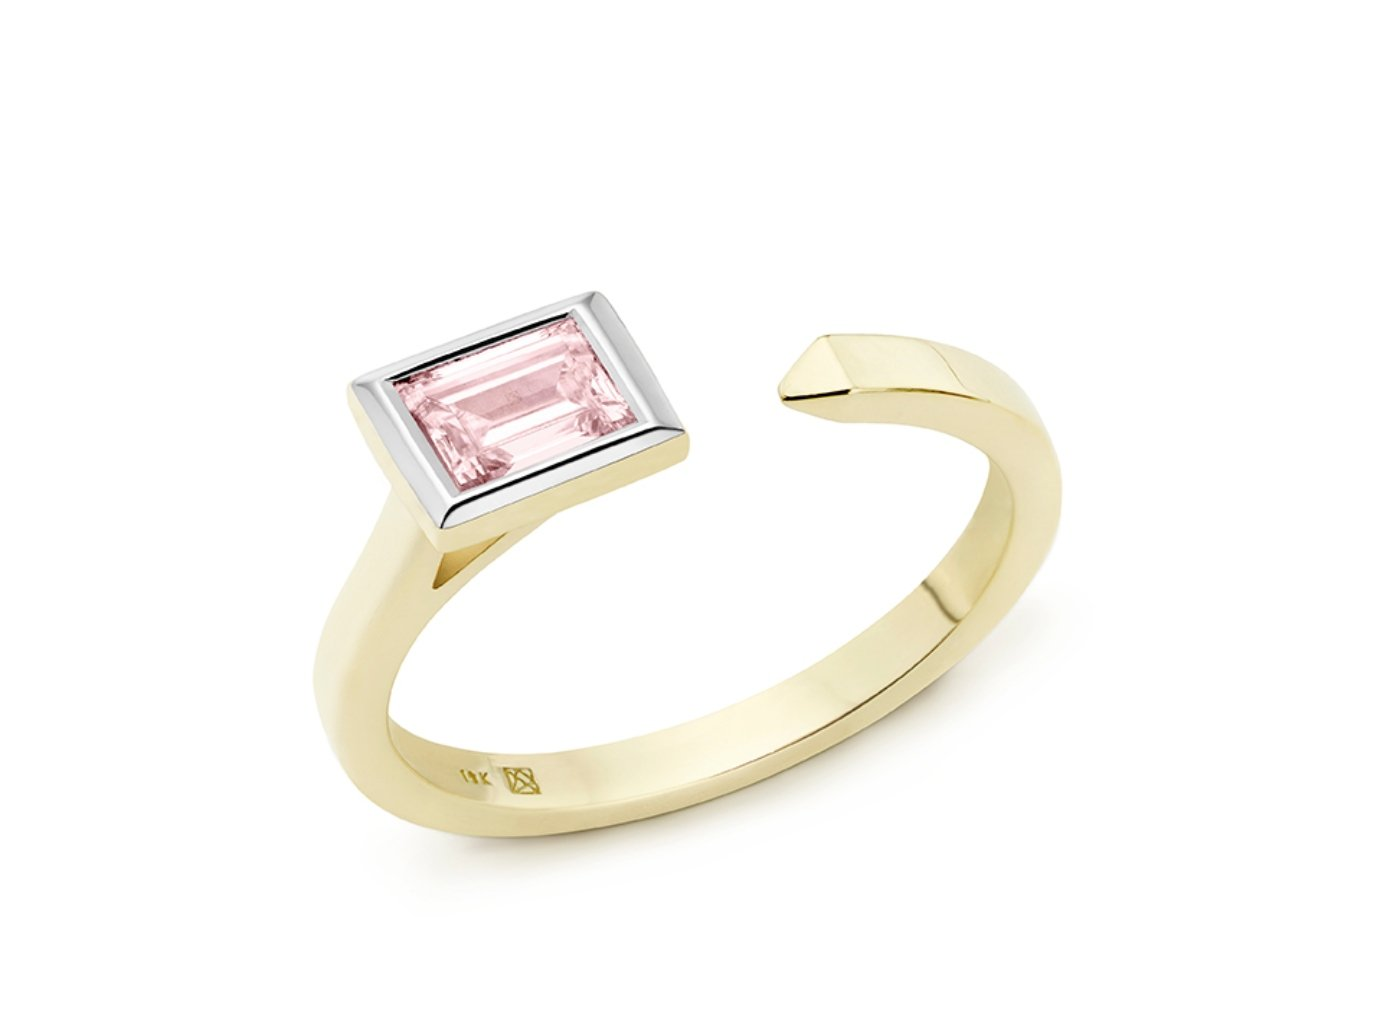 Side view of Baguette open top 3/8 carat ring with pink diamond